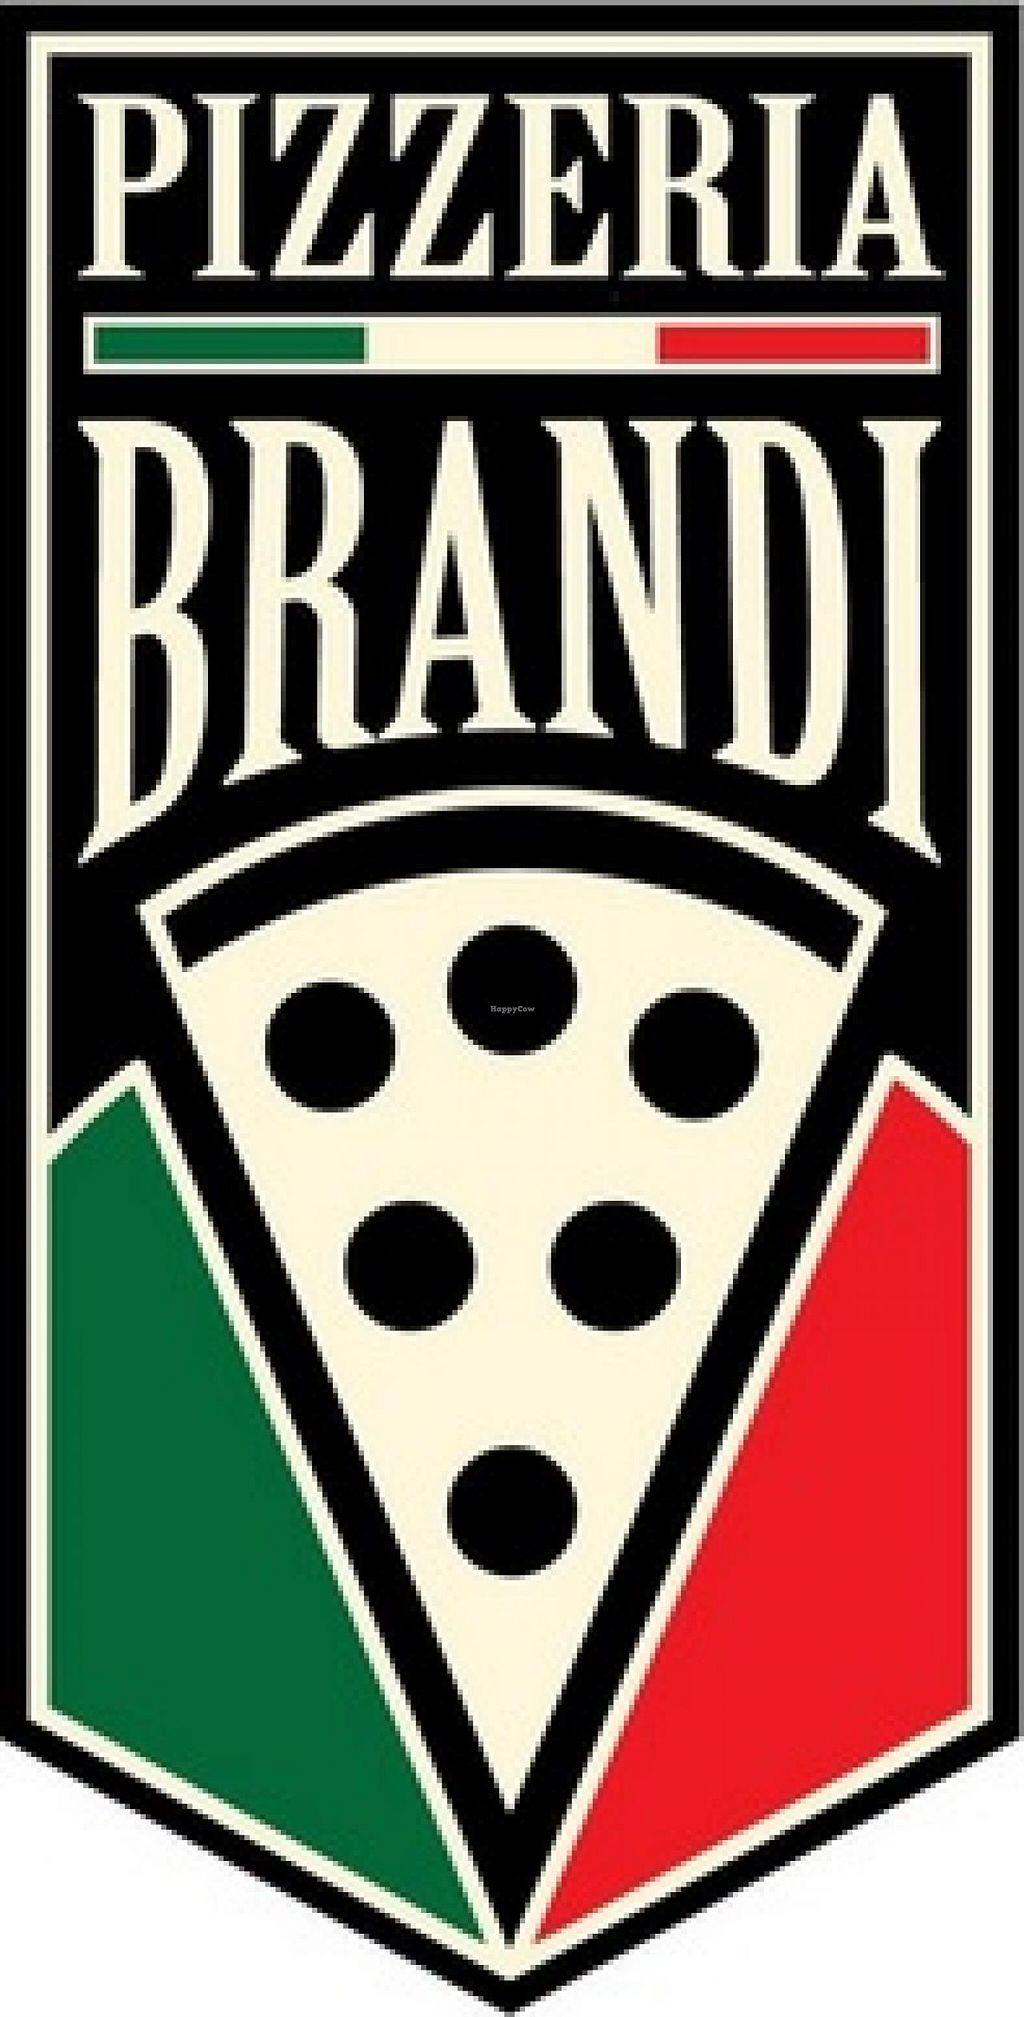 """Photo of Pizzeria Brandi  by <a href=""""/members/profile/community"""">community</a> <br/>Pizzeria Brandi <br/> February 9, 2014  - <a href='/contact/abuse/image/44924/64005'>Report</a>"""